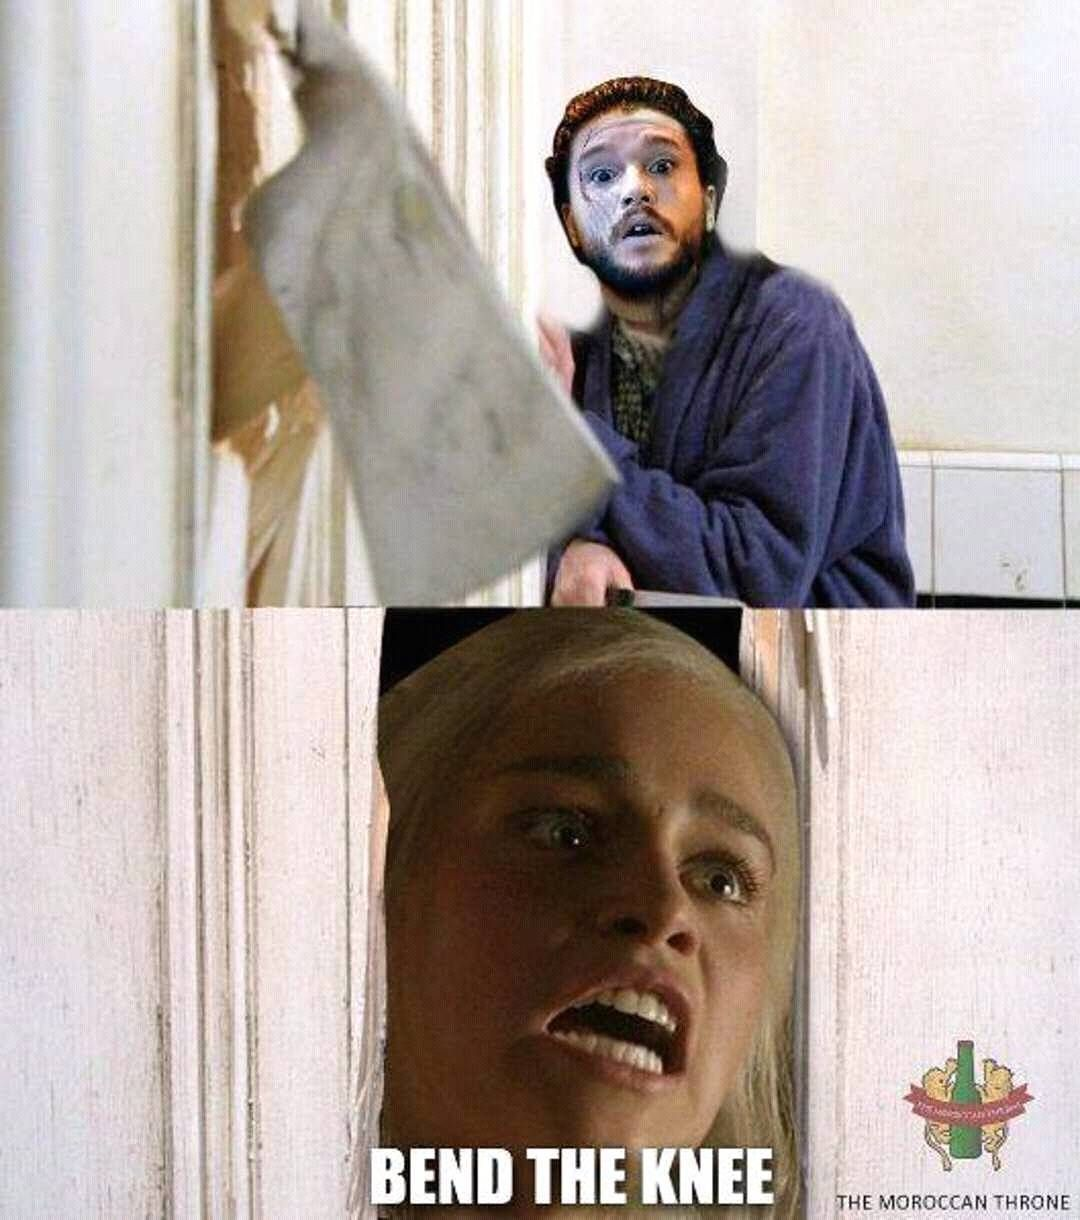 Game of Thrones meme lol!! Dany and Jon BEND THE KNEE